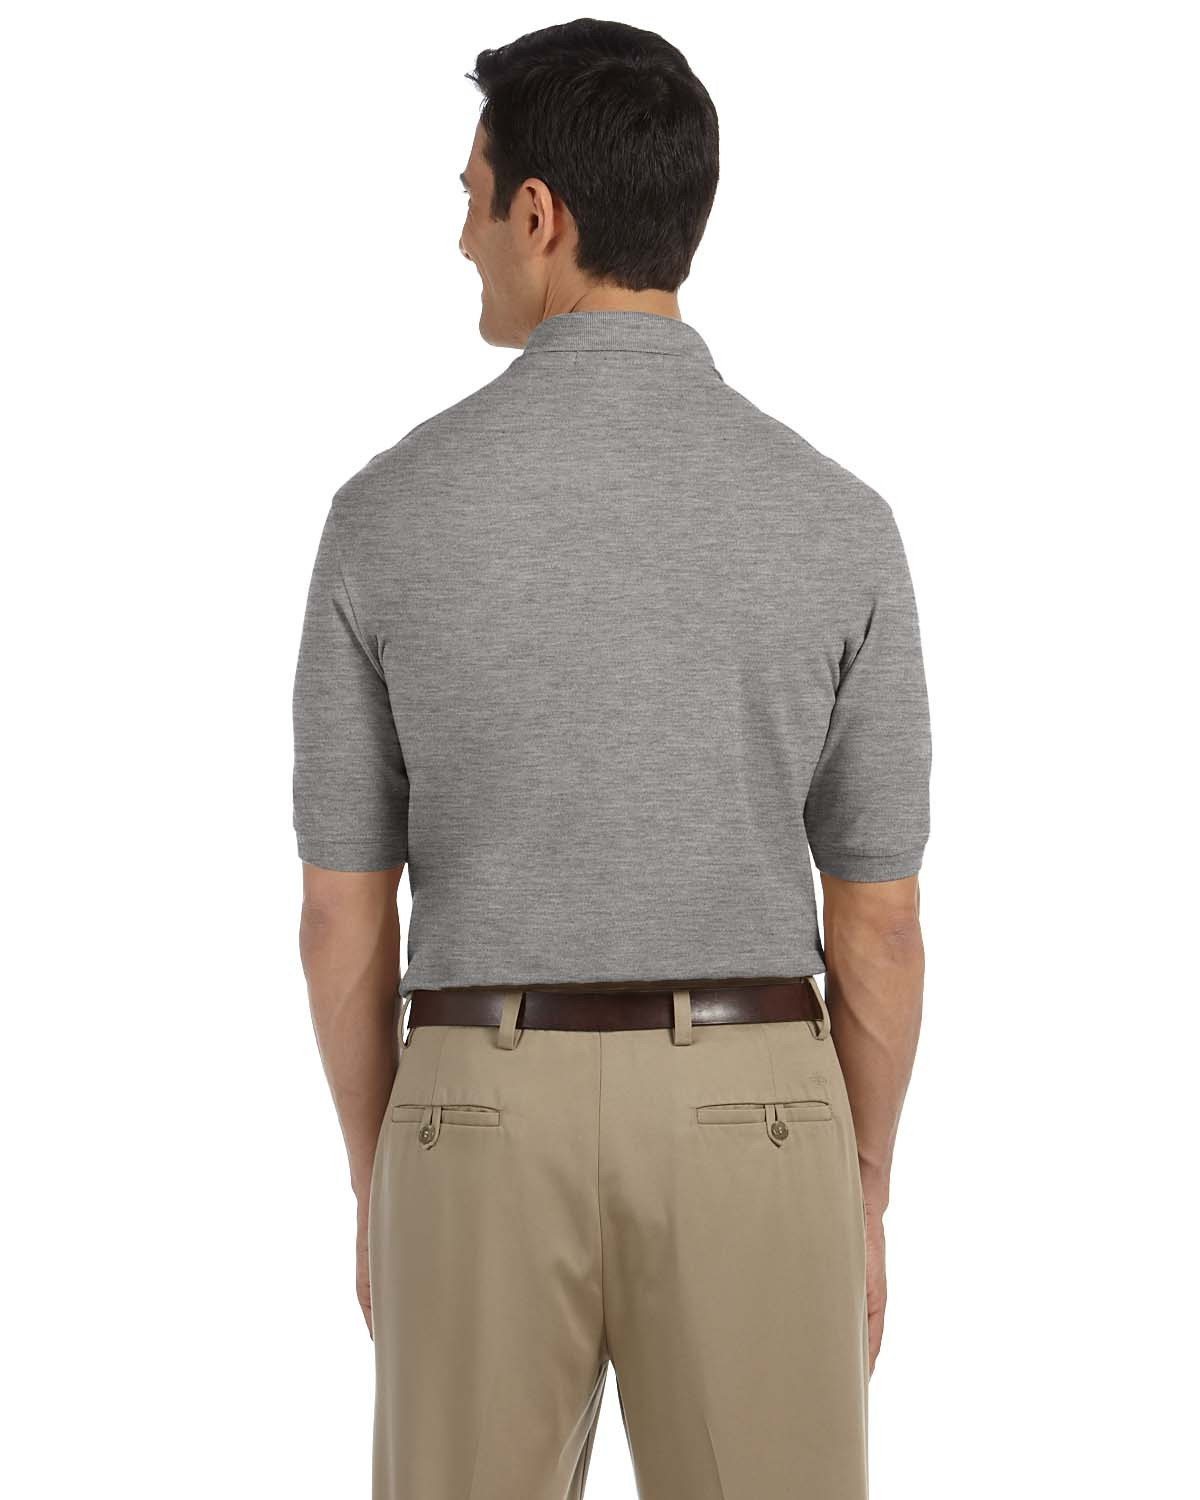 M265P Harriton GREY HEATHER